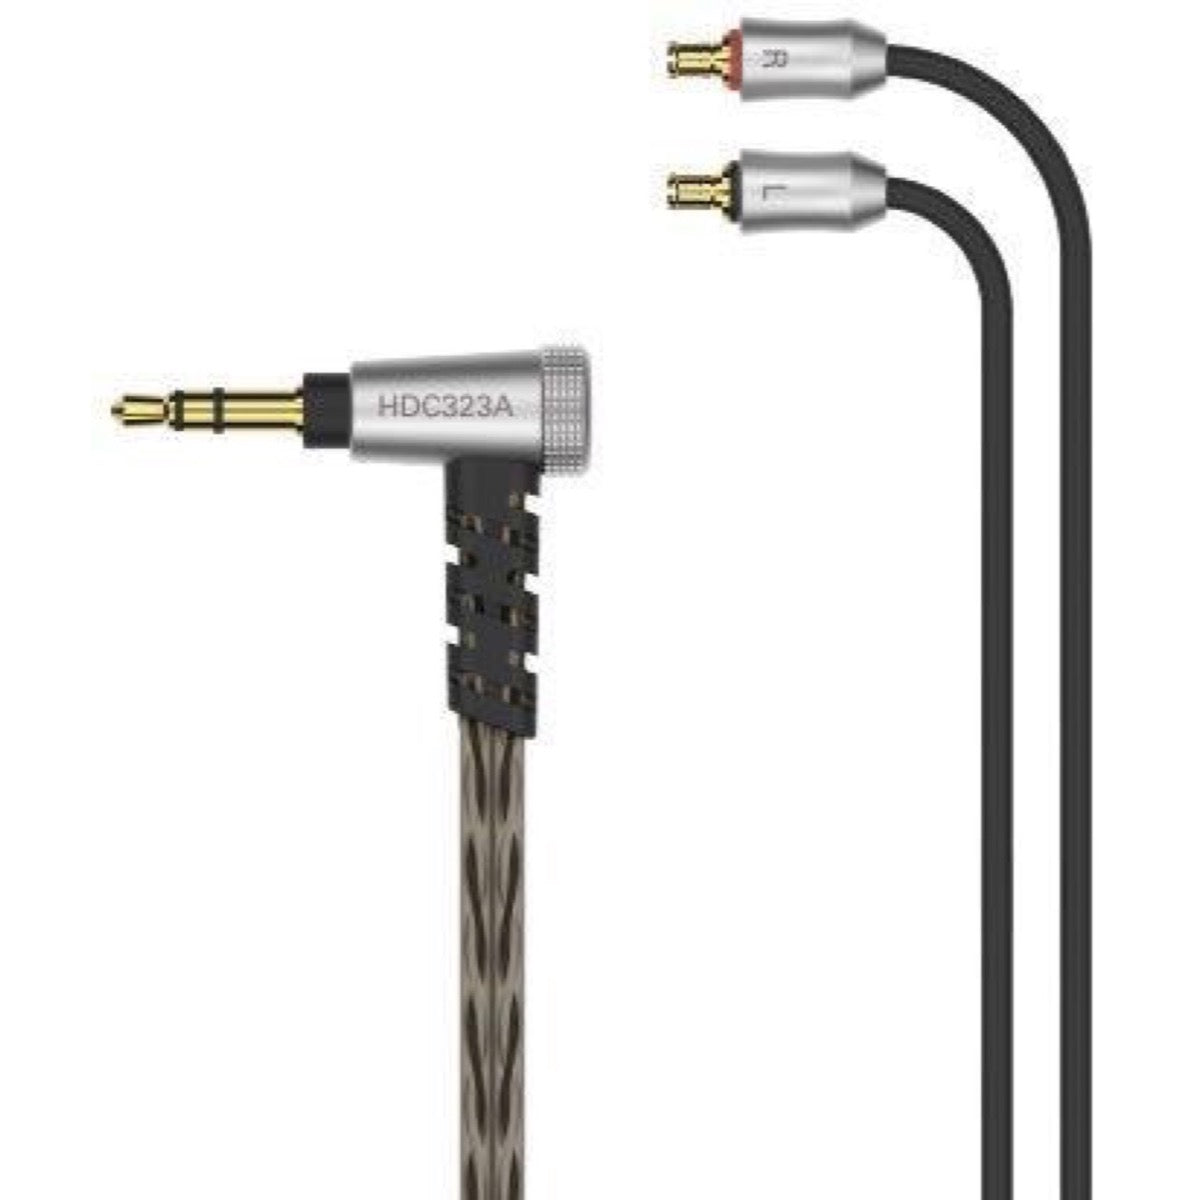 Audio-Technica HDC323A1.2 Detachable Headphone Cable